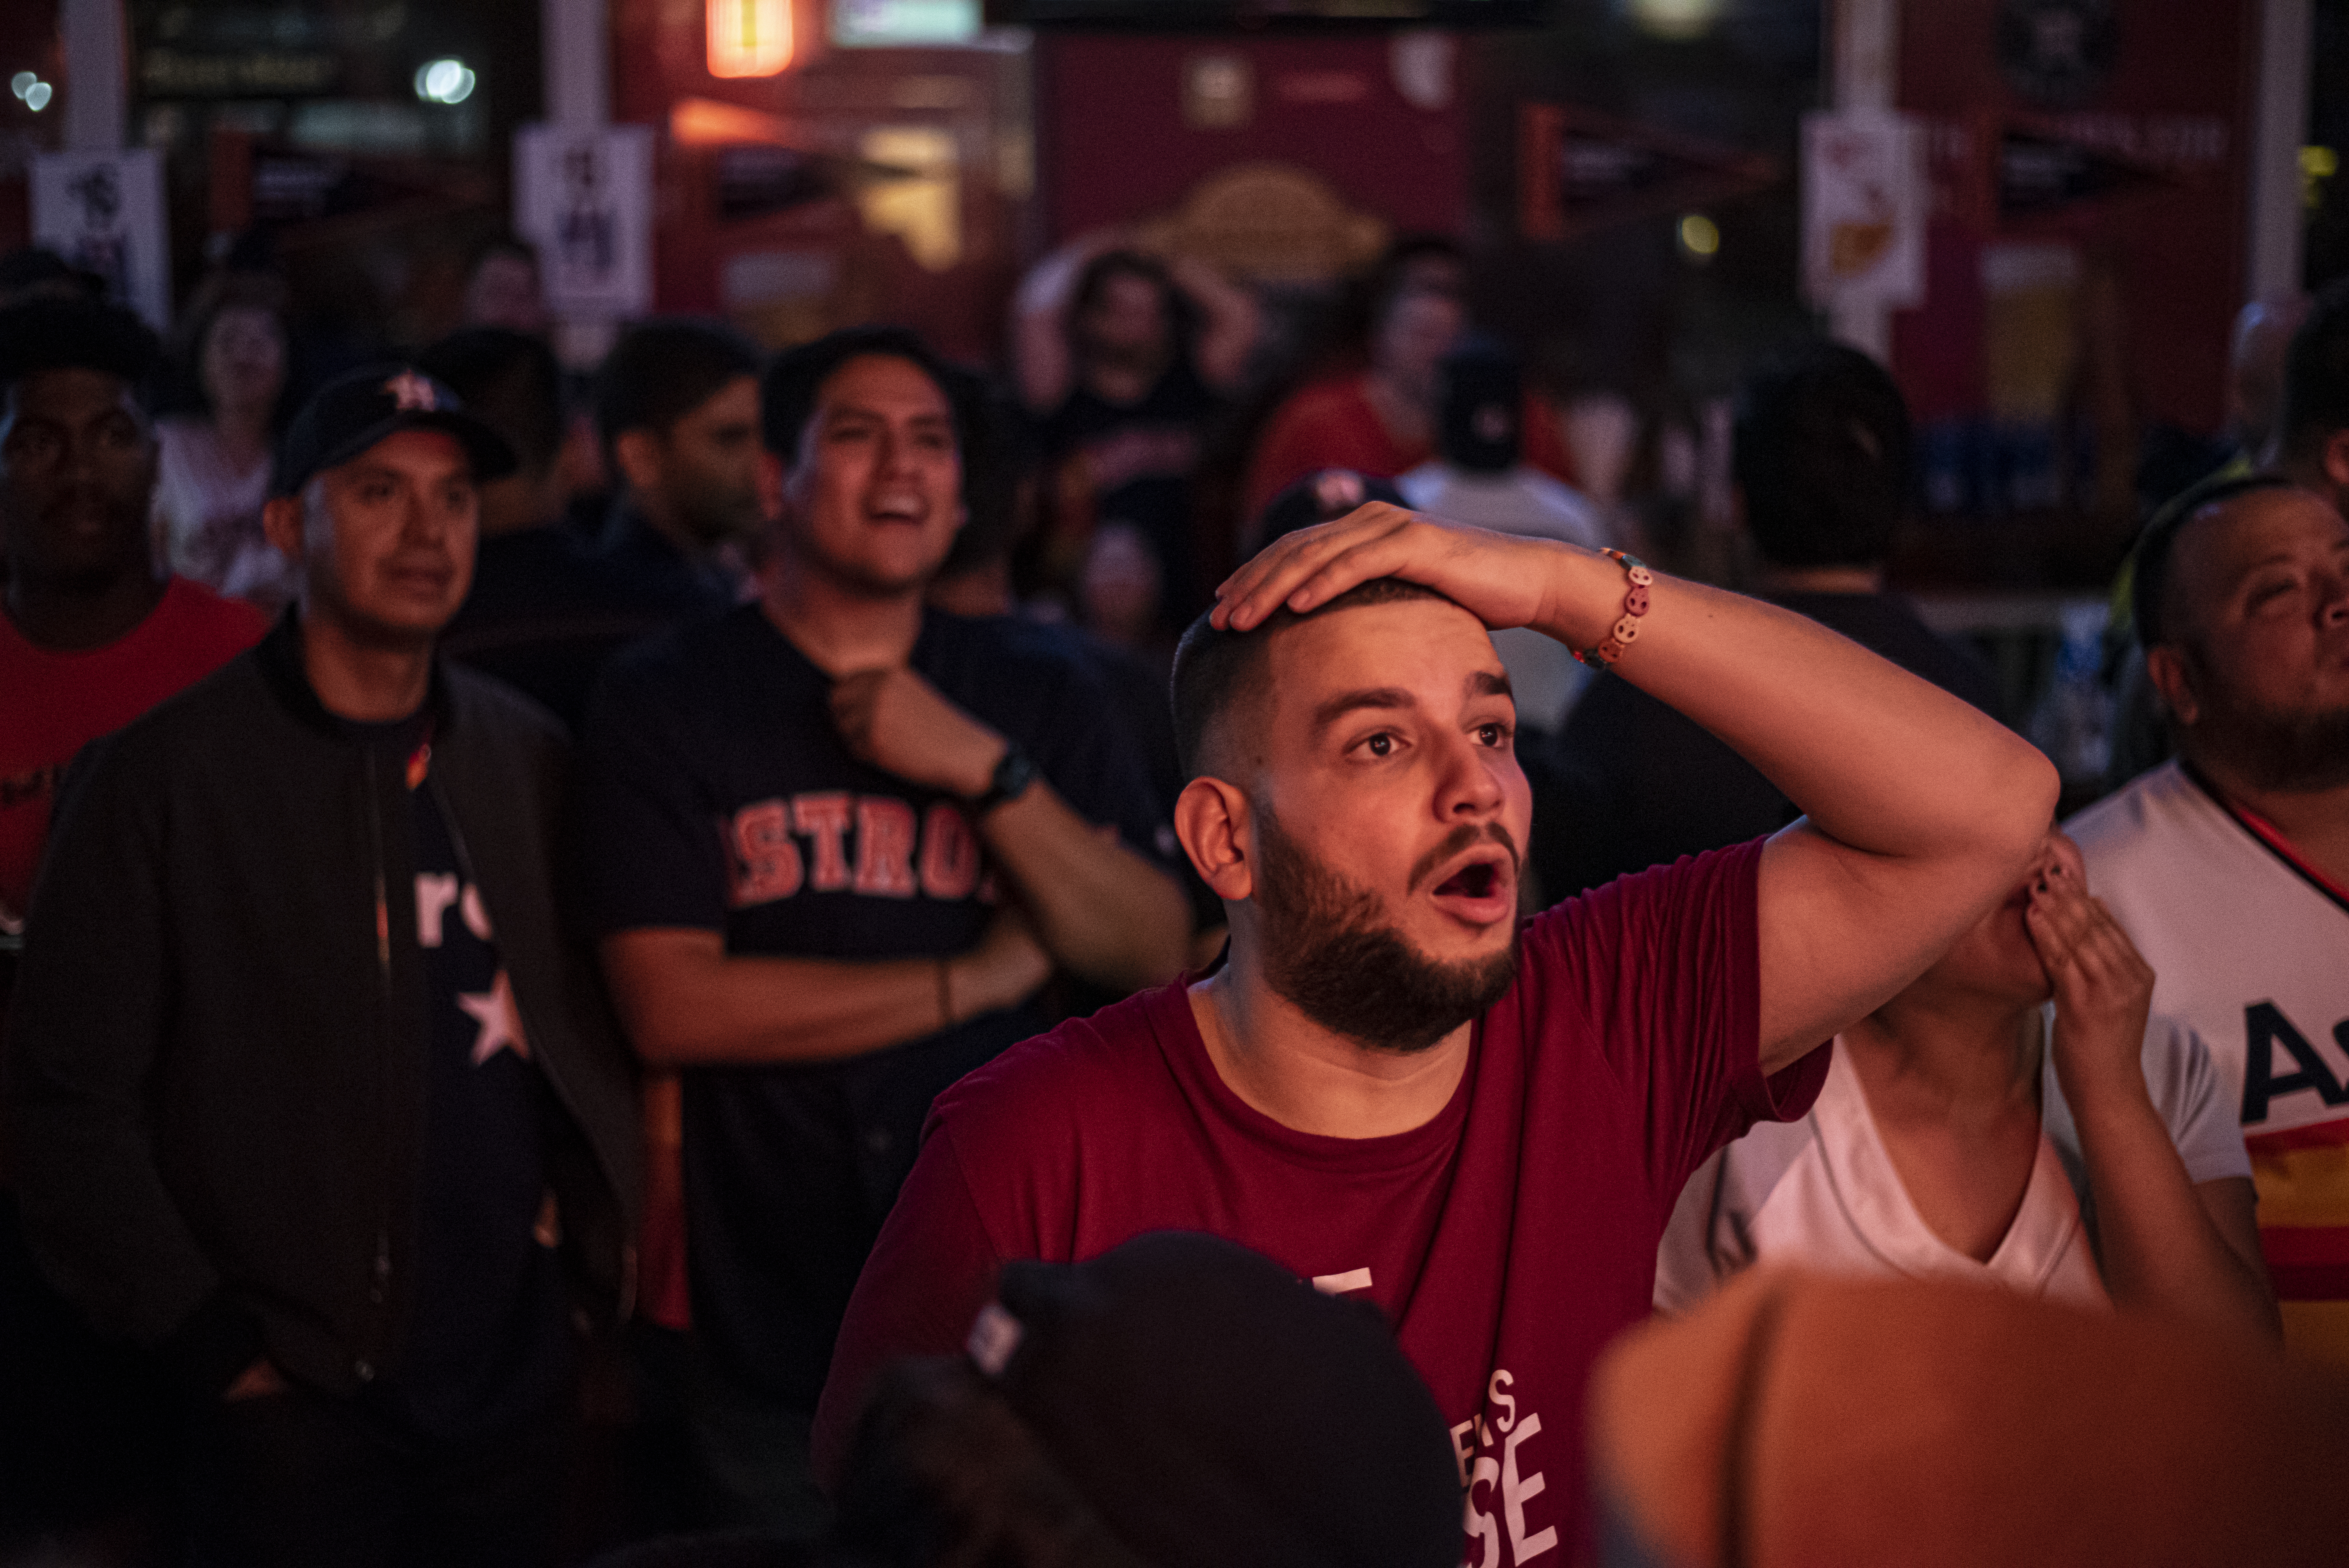 Astros Fans React After Game Six Of The World Series